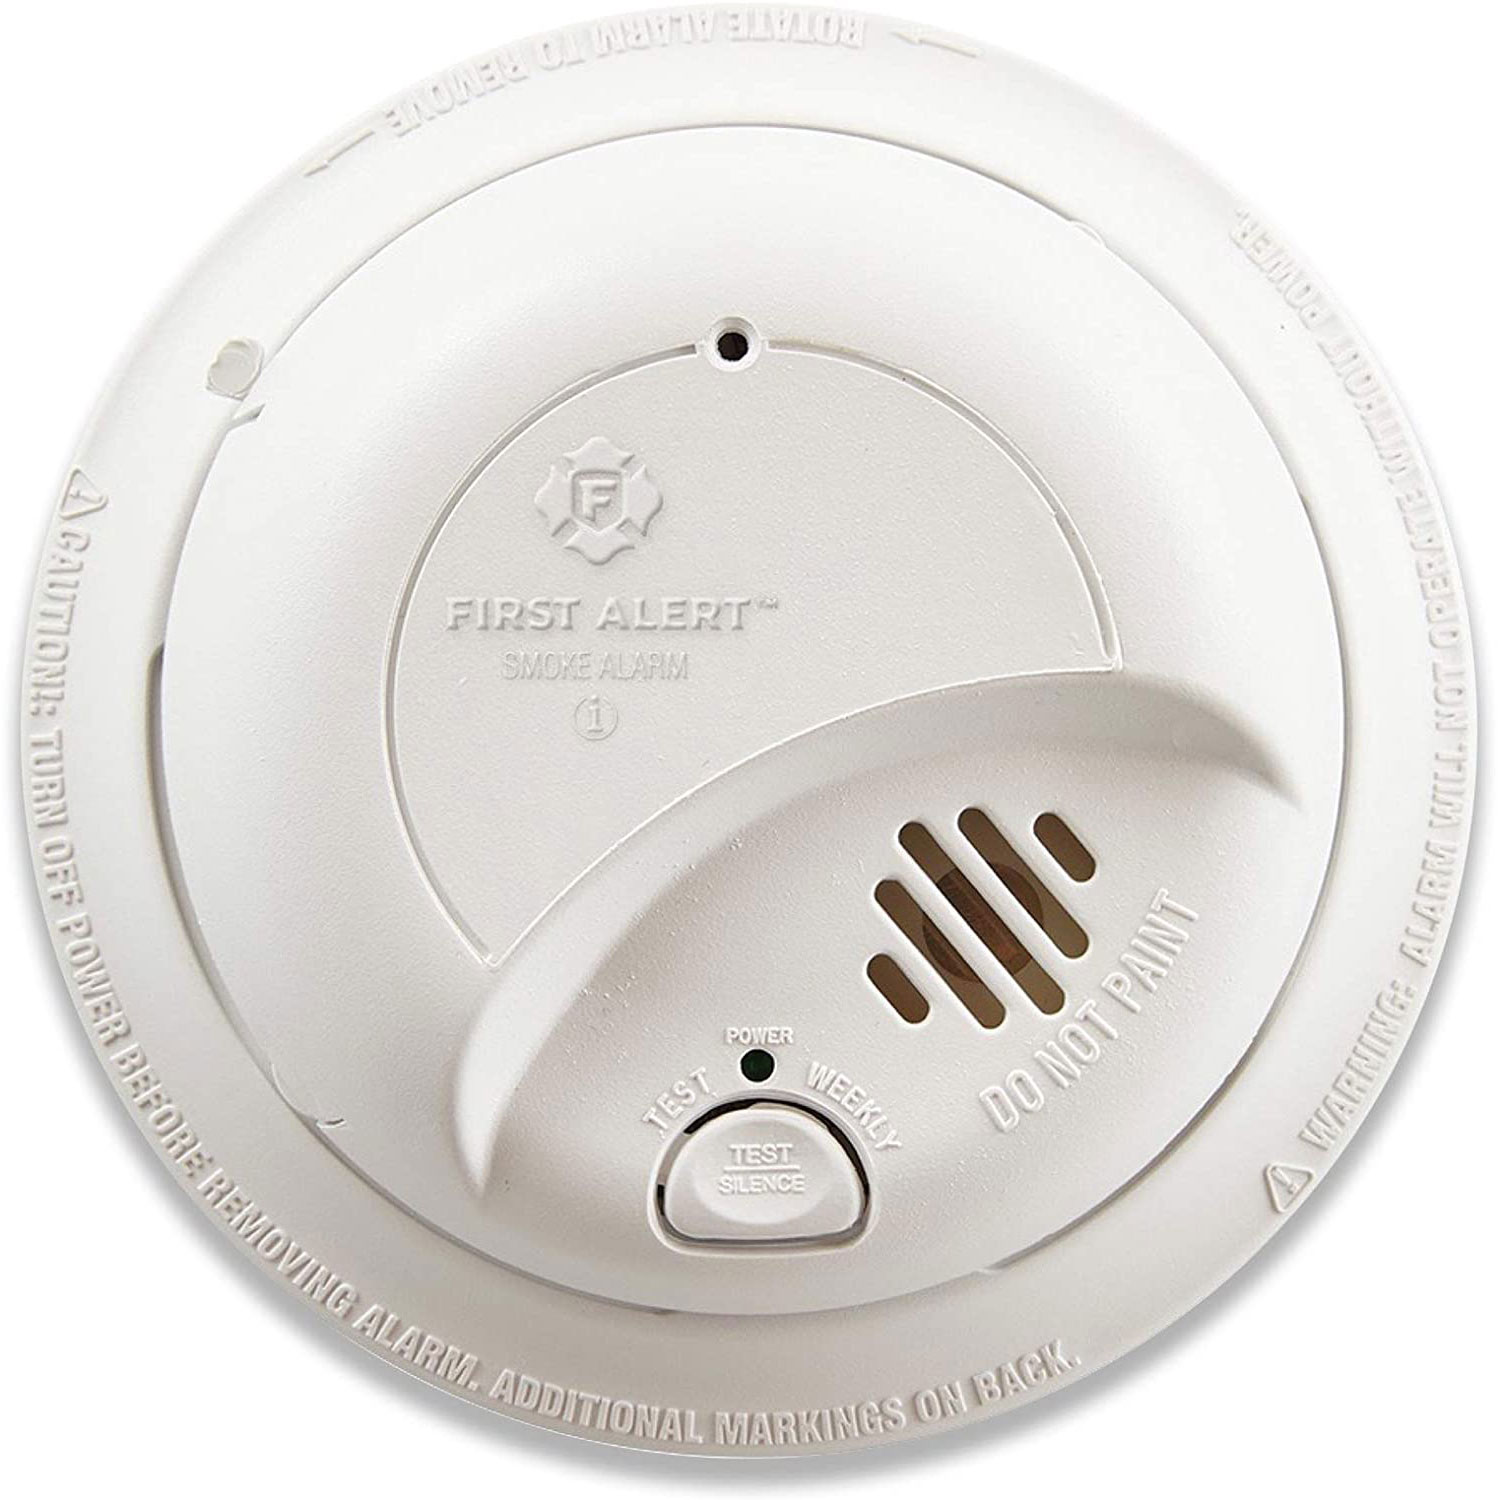 First Alert 9120lbl Brk Brands Hardwire Smoke Alarm With 10 Year